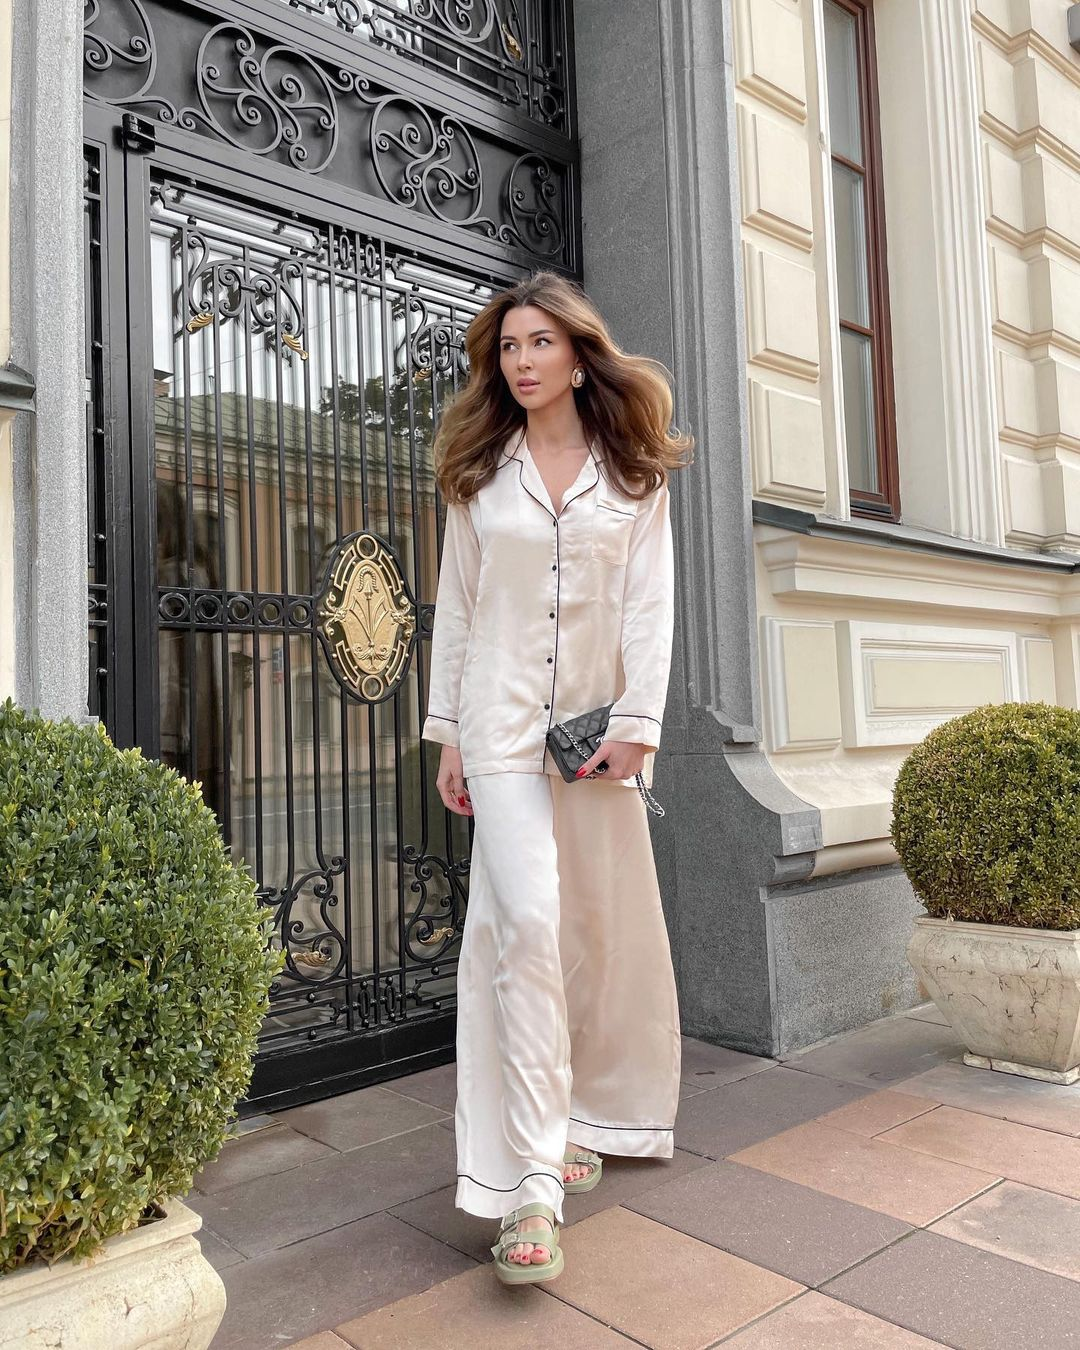 Anna Zavorotnyuk went out into the street in a ridiculous outfit